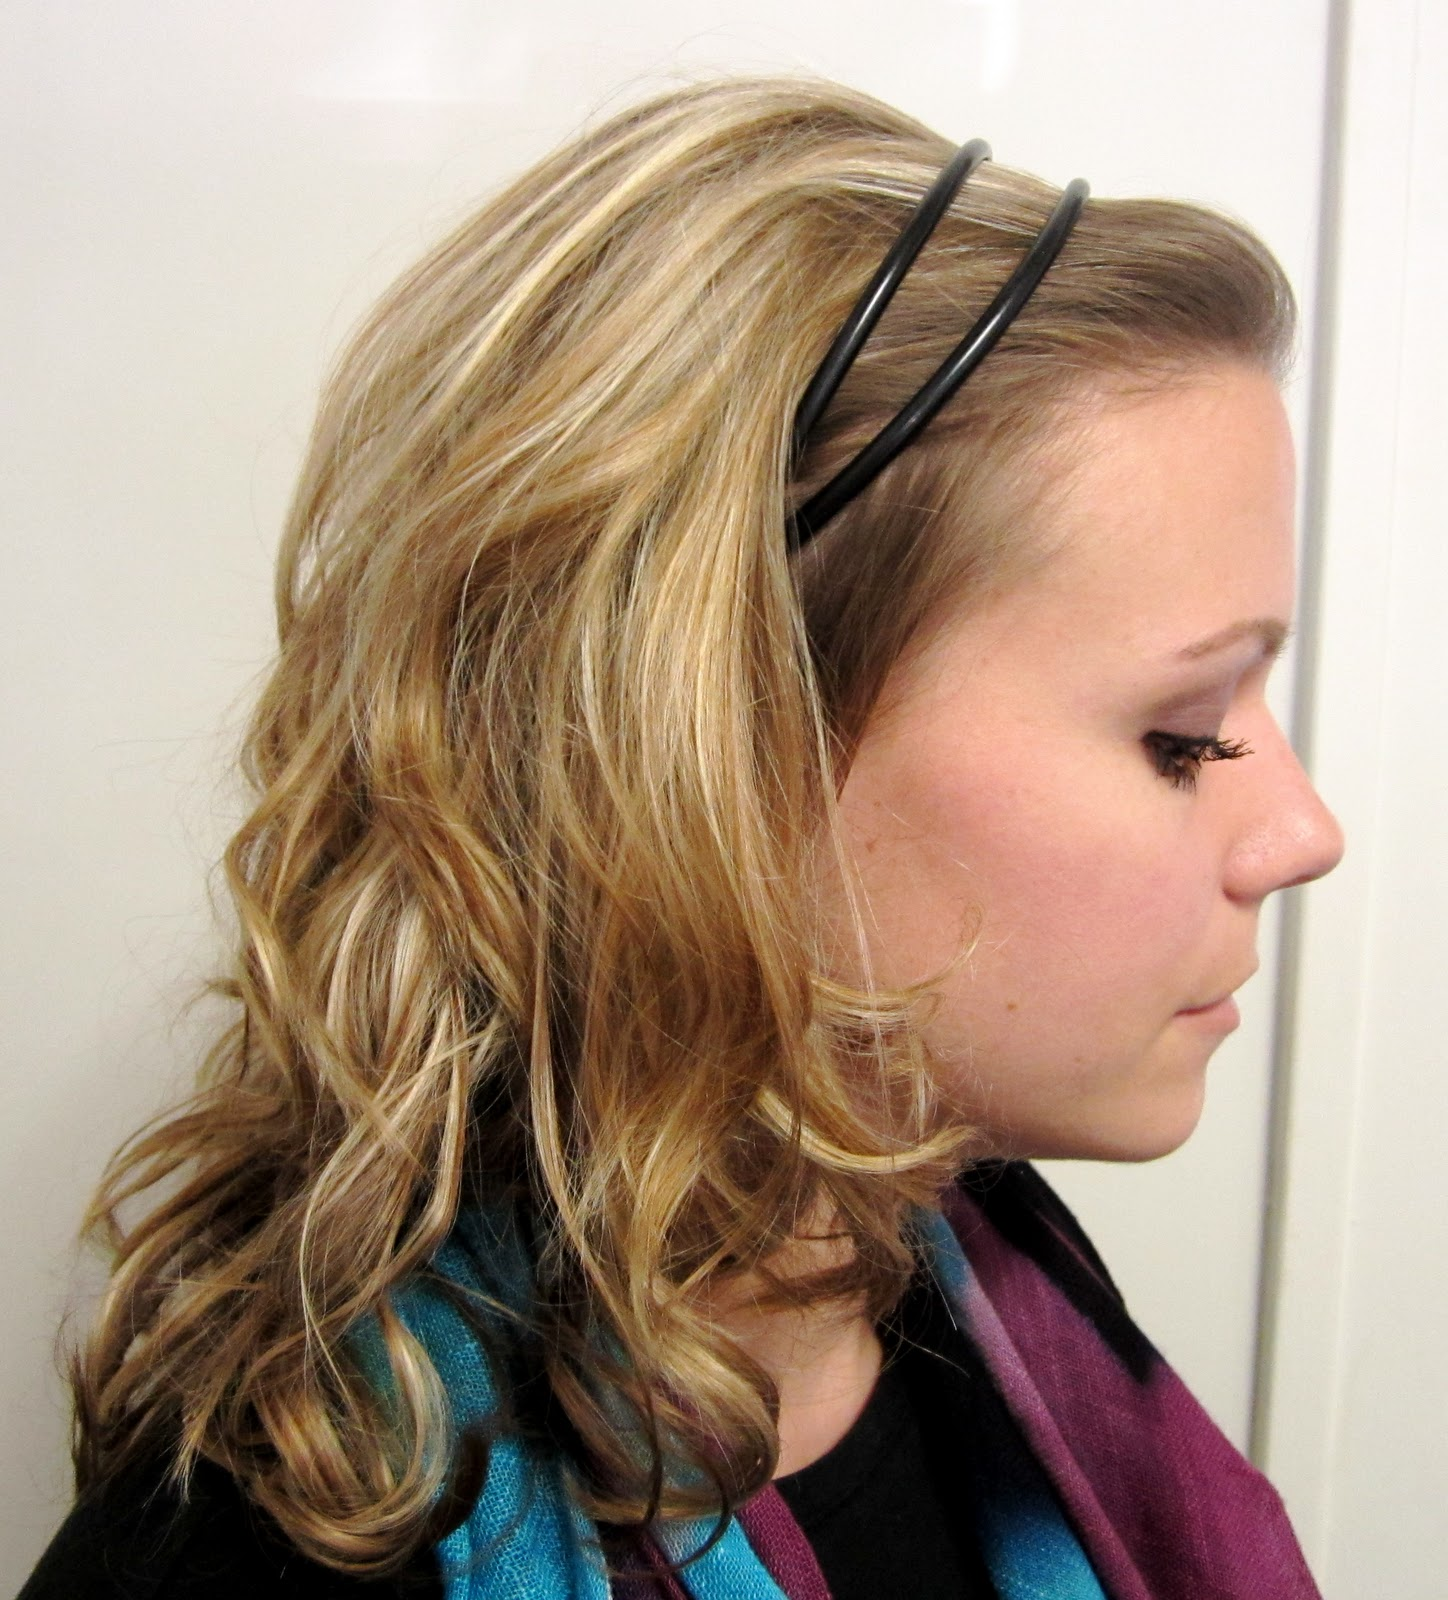 Bye Bye Beehive A Hairstyle Blog October 2011